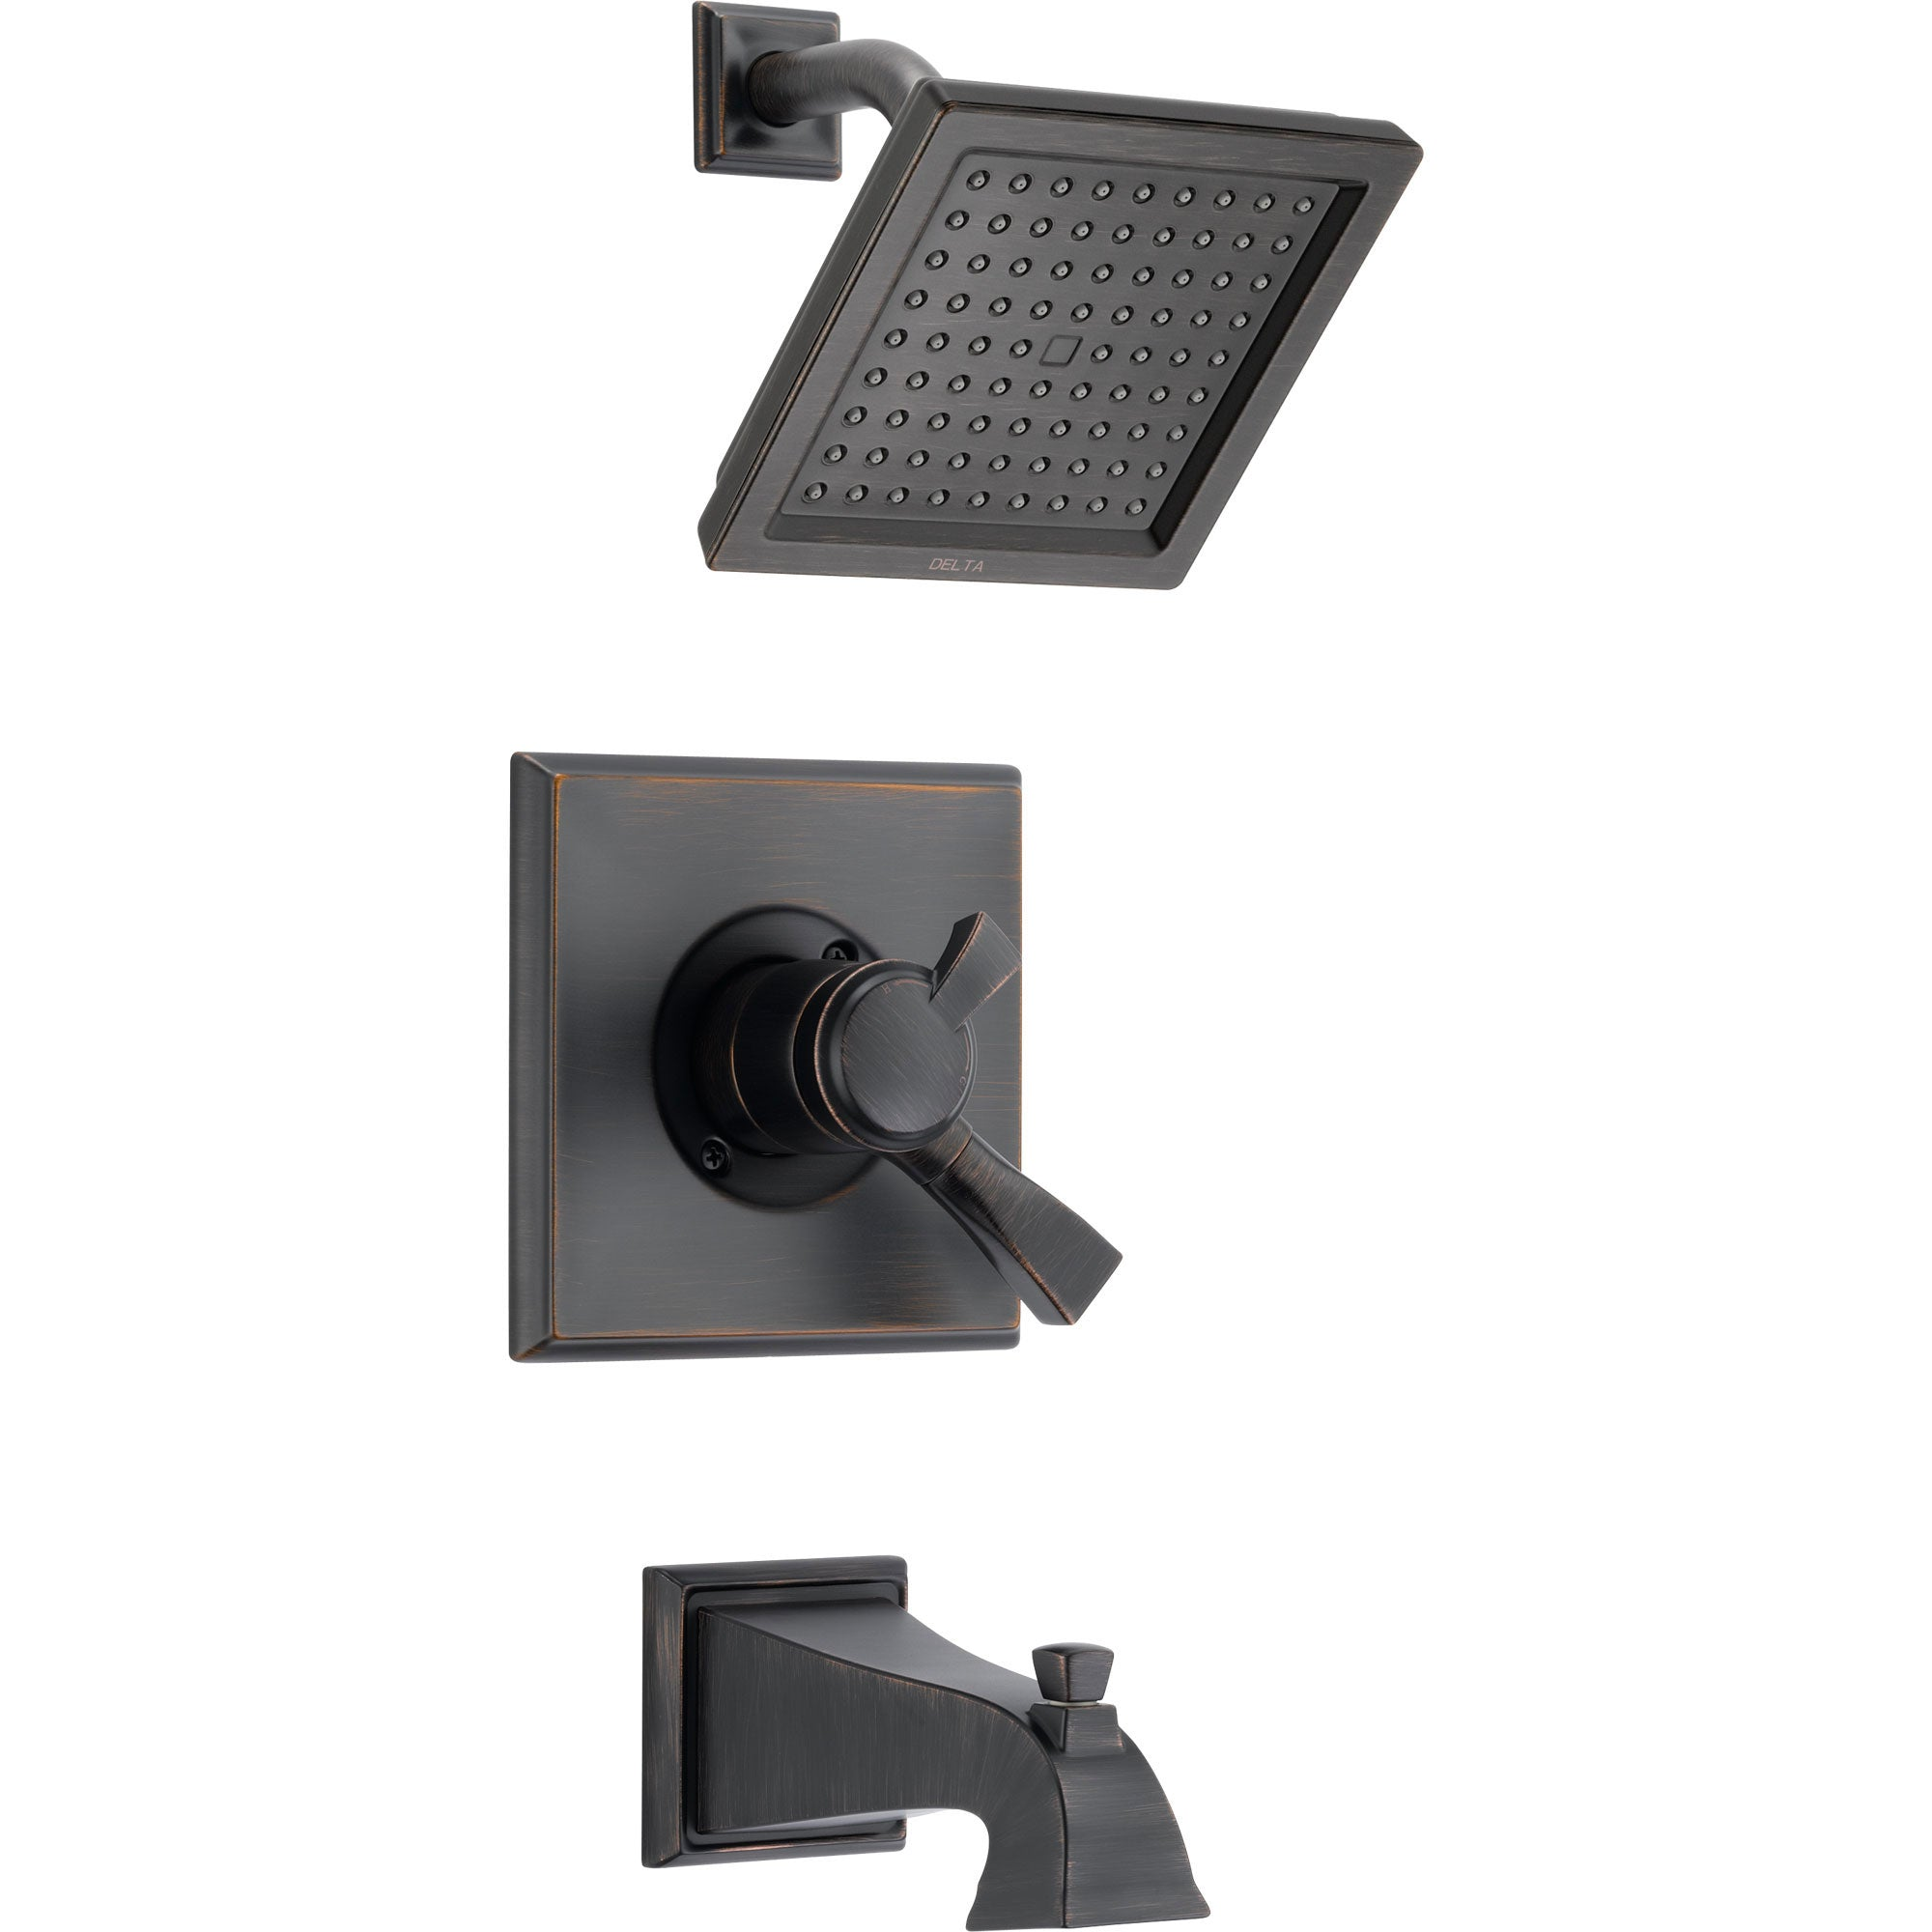 Delta Dryden Modern Temp/Volume Venetian Bronze Tub & Shower Faucet Trim 457049